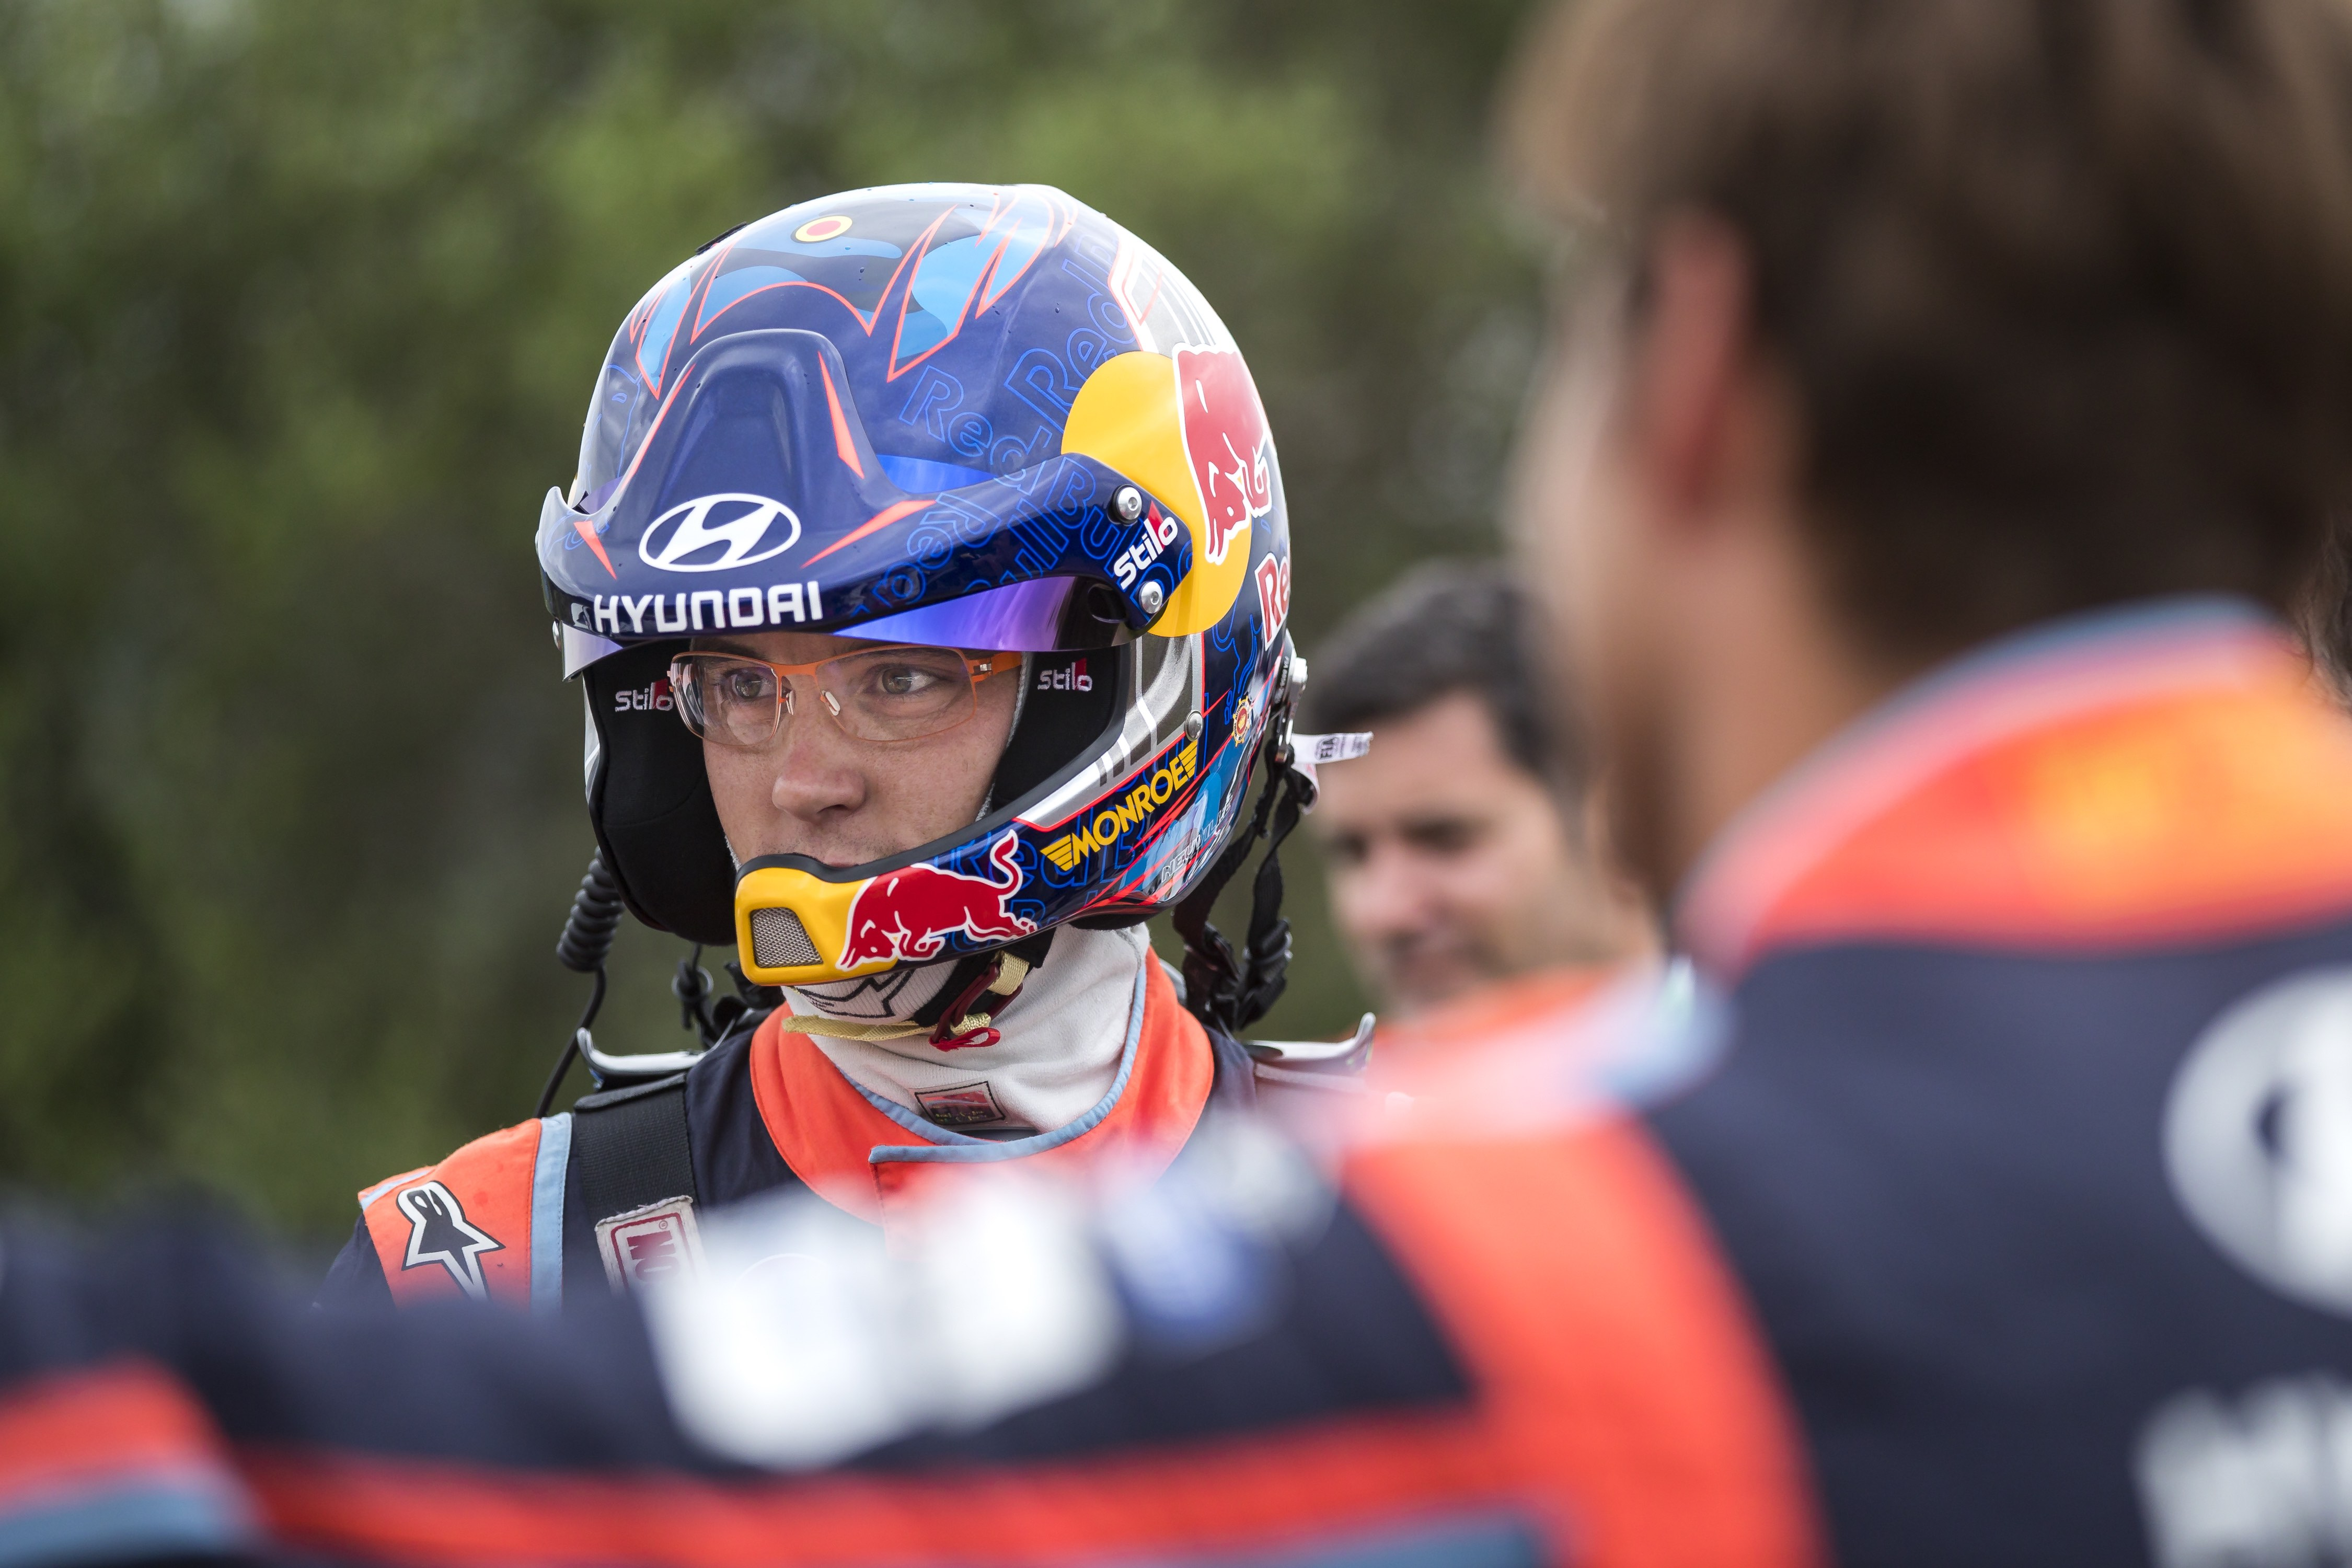 WRC leader Neuville aims for three in a row in Finland